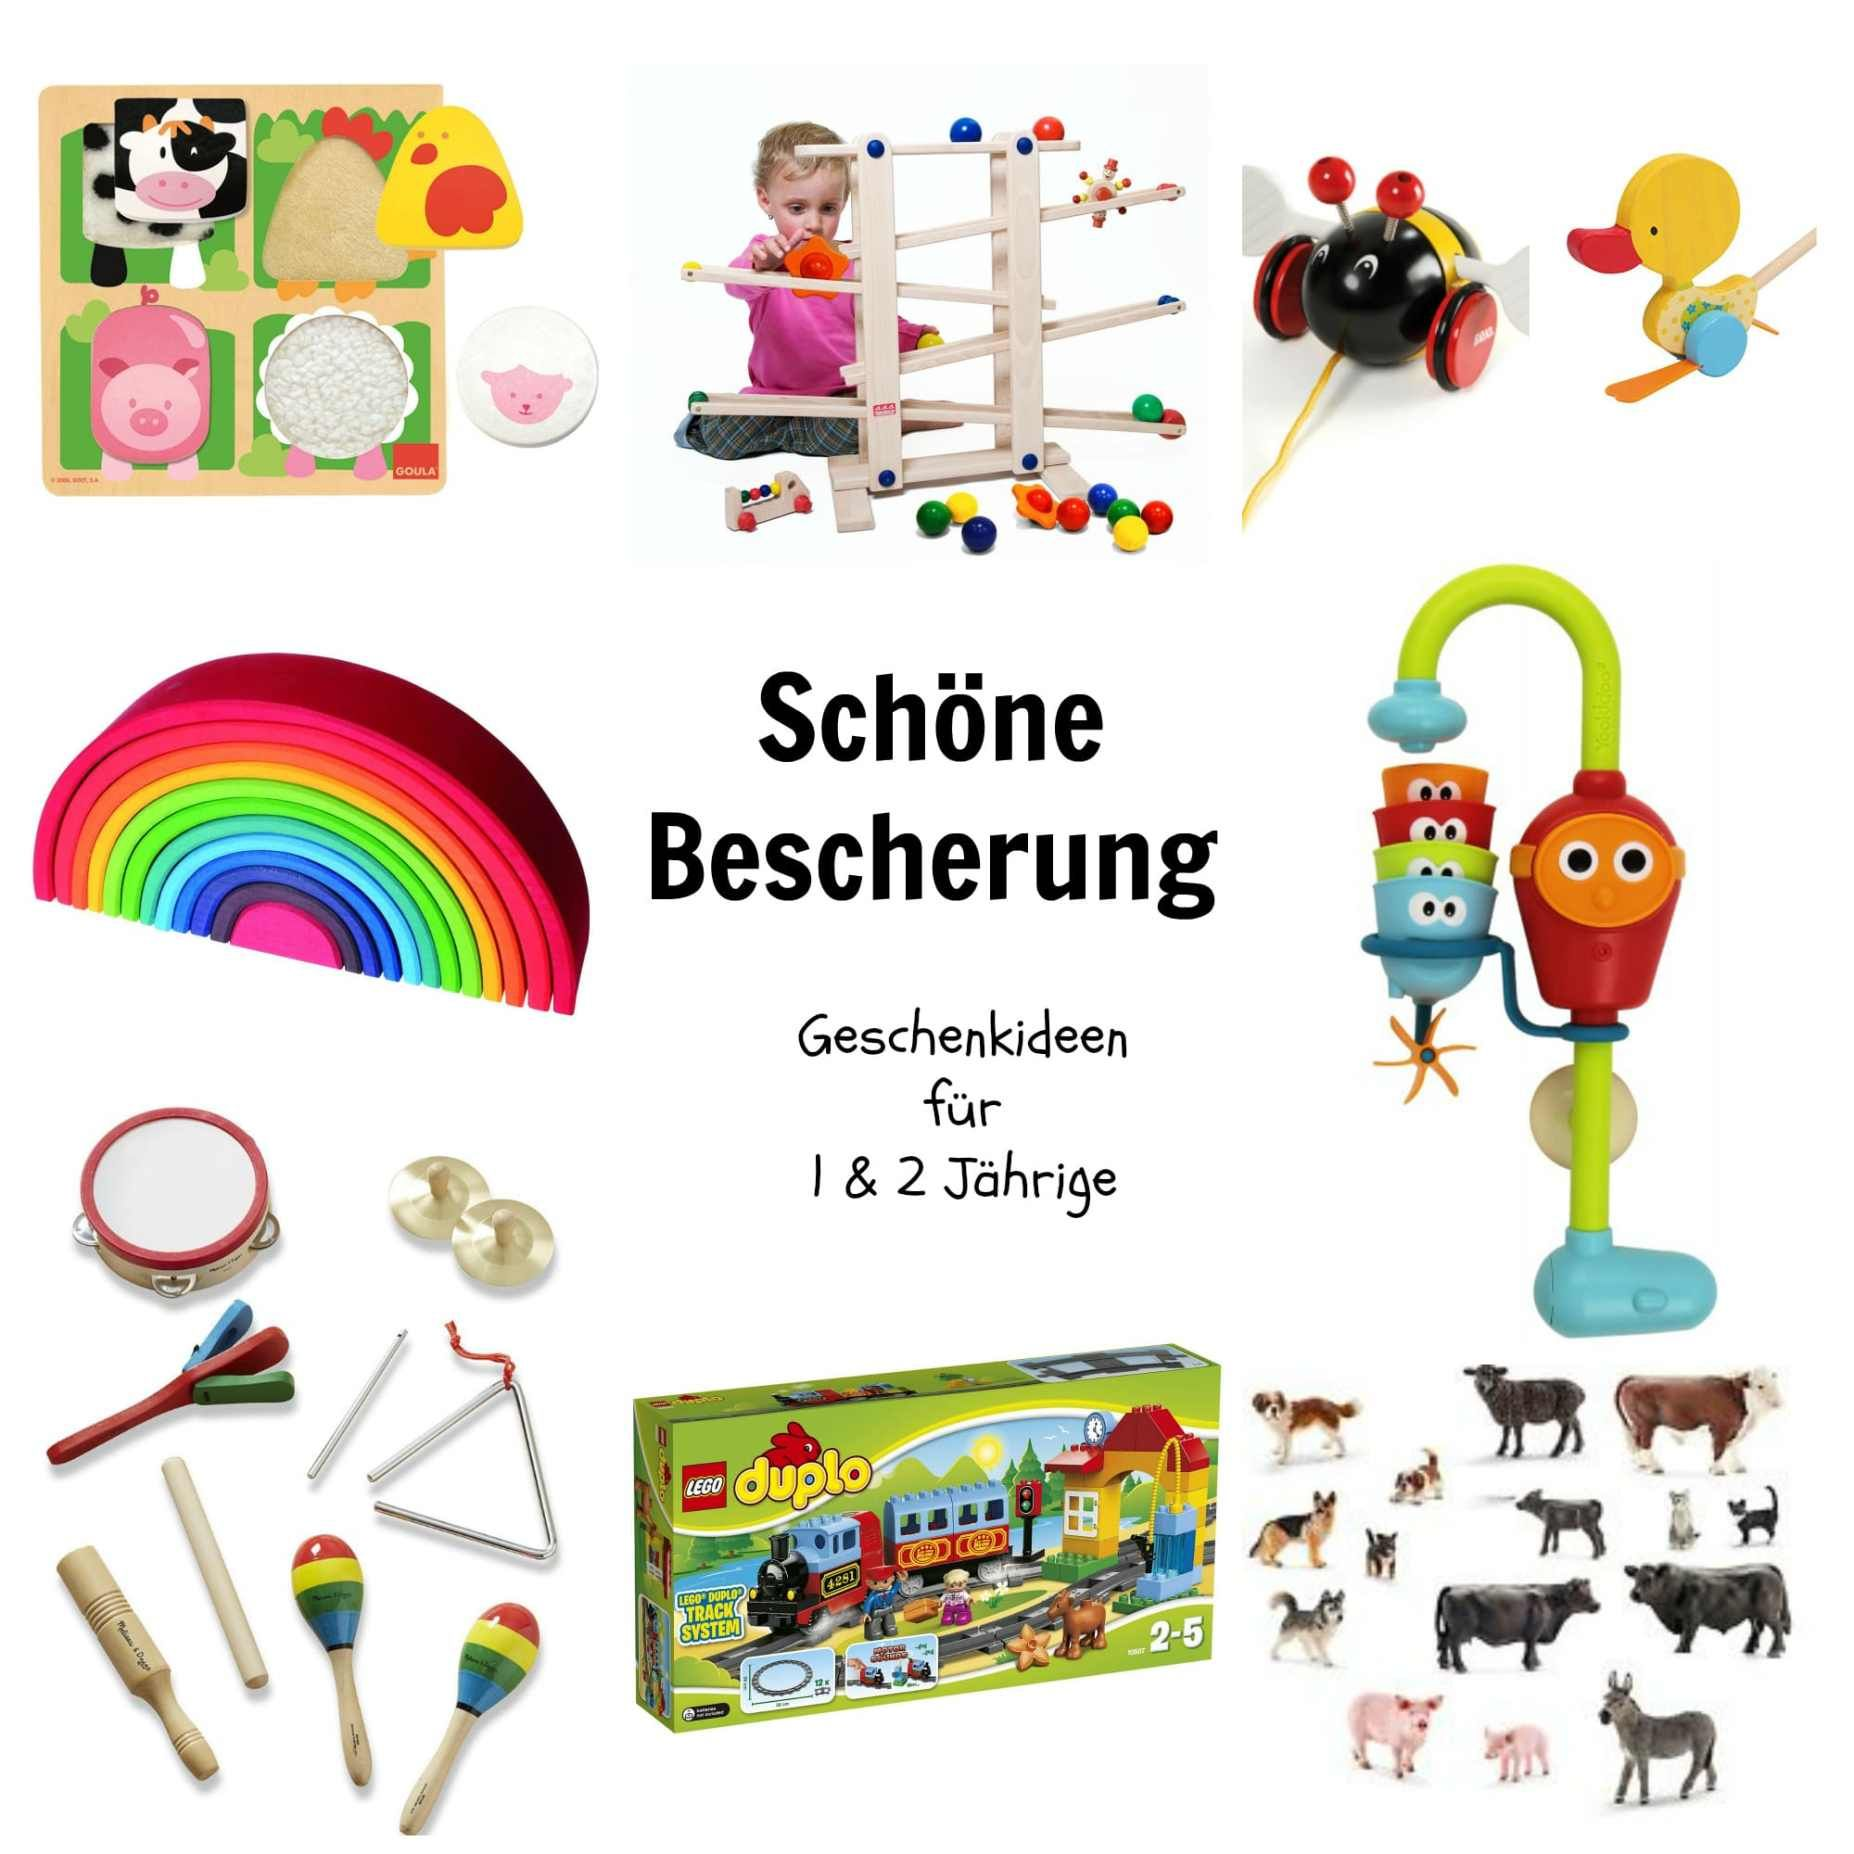 sch ne bescherung geschenkideen f r 1 bis 2 j hrige baby baby christmas und kids playing. Black Bedroom Furniture Sets. Home Design Ideas